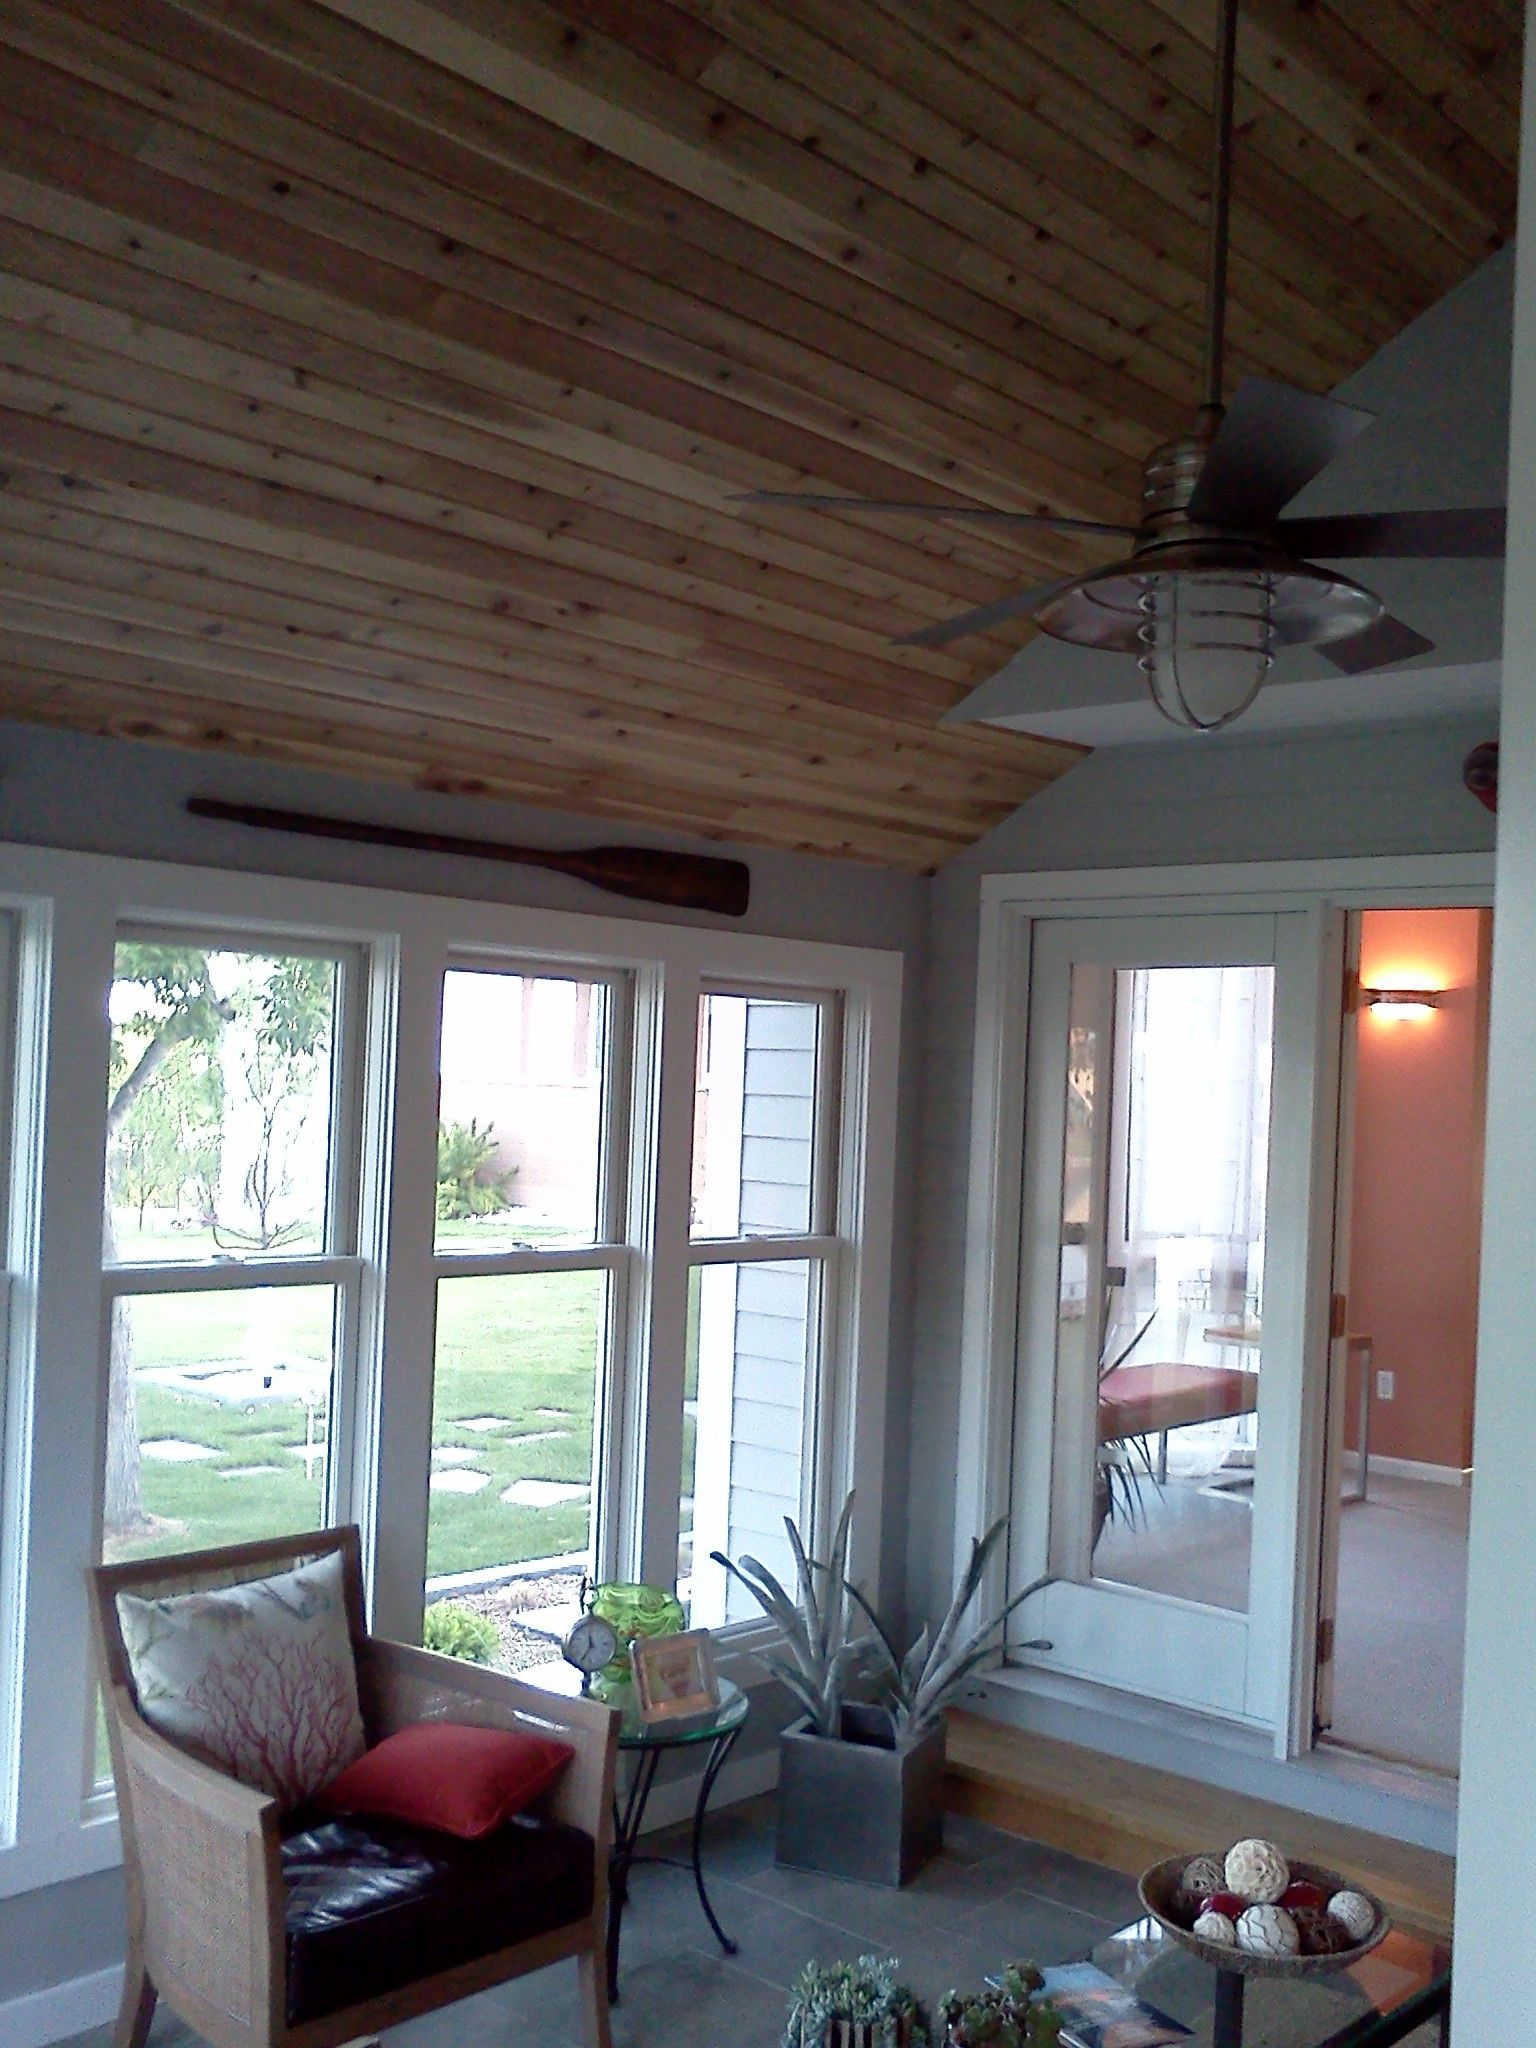 3 Season Porch Turned Into A Year Round Sunroom House With Porch